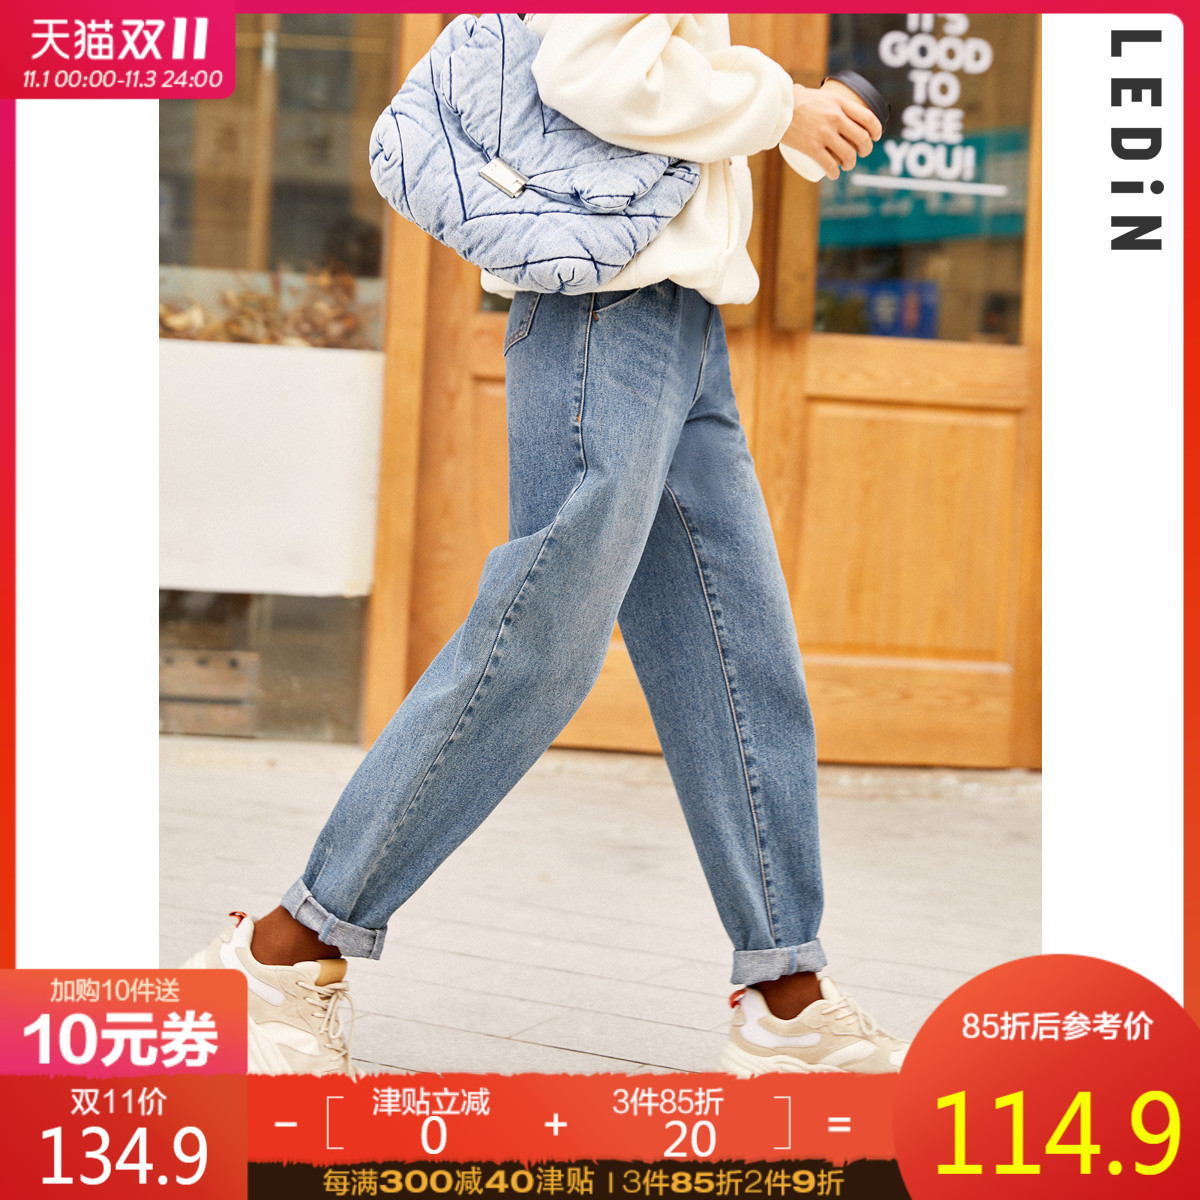 Leding casual jeans 2020 winter new high-waist straight-leg old carrot pants jeans women winter thin